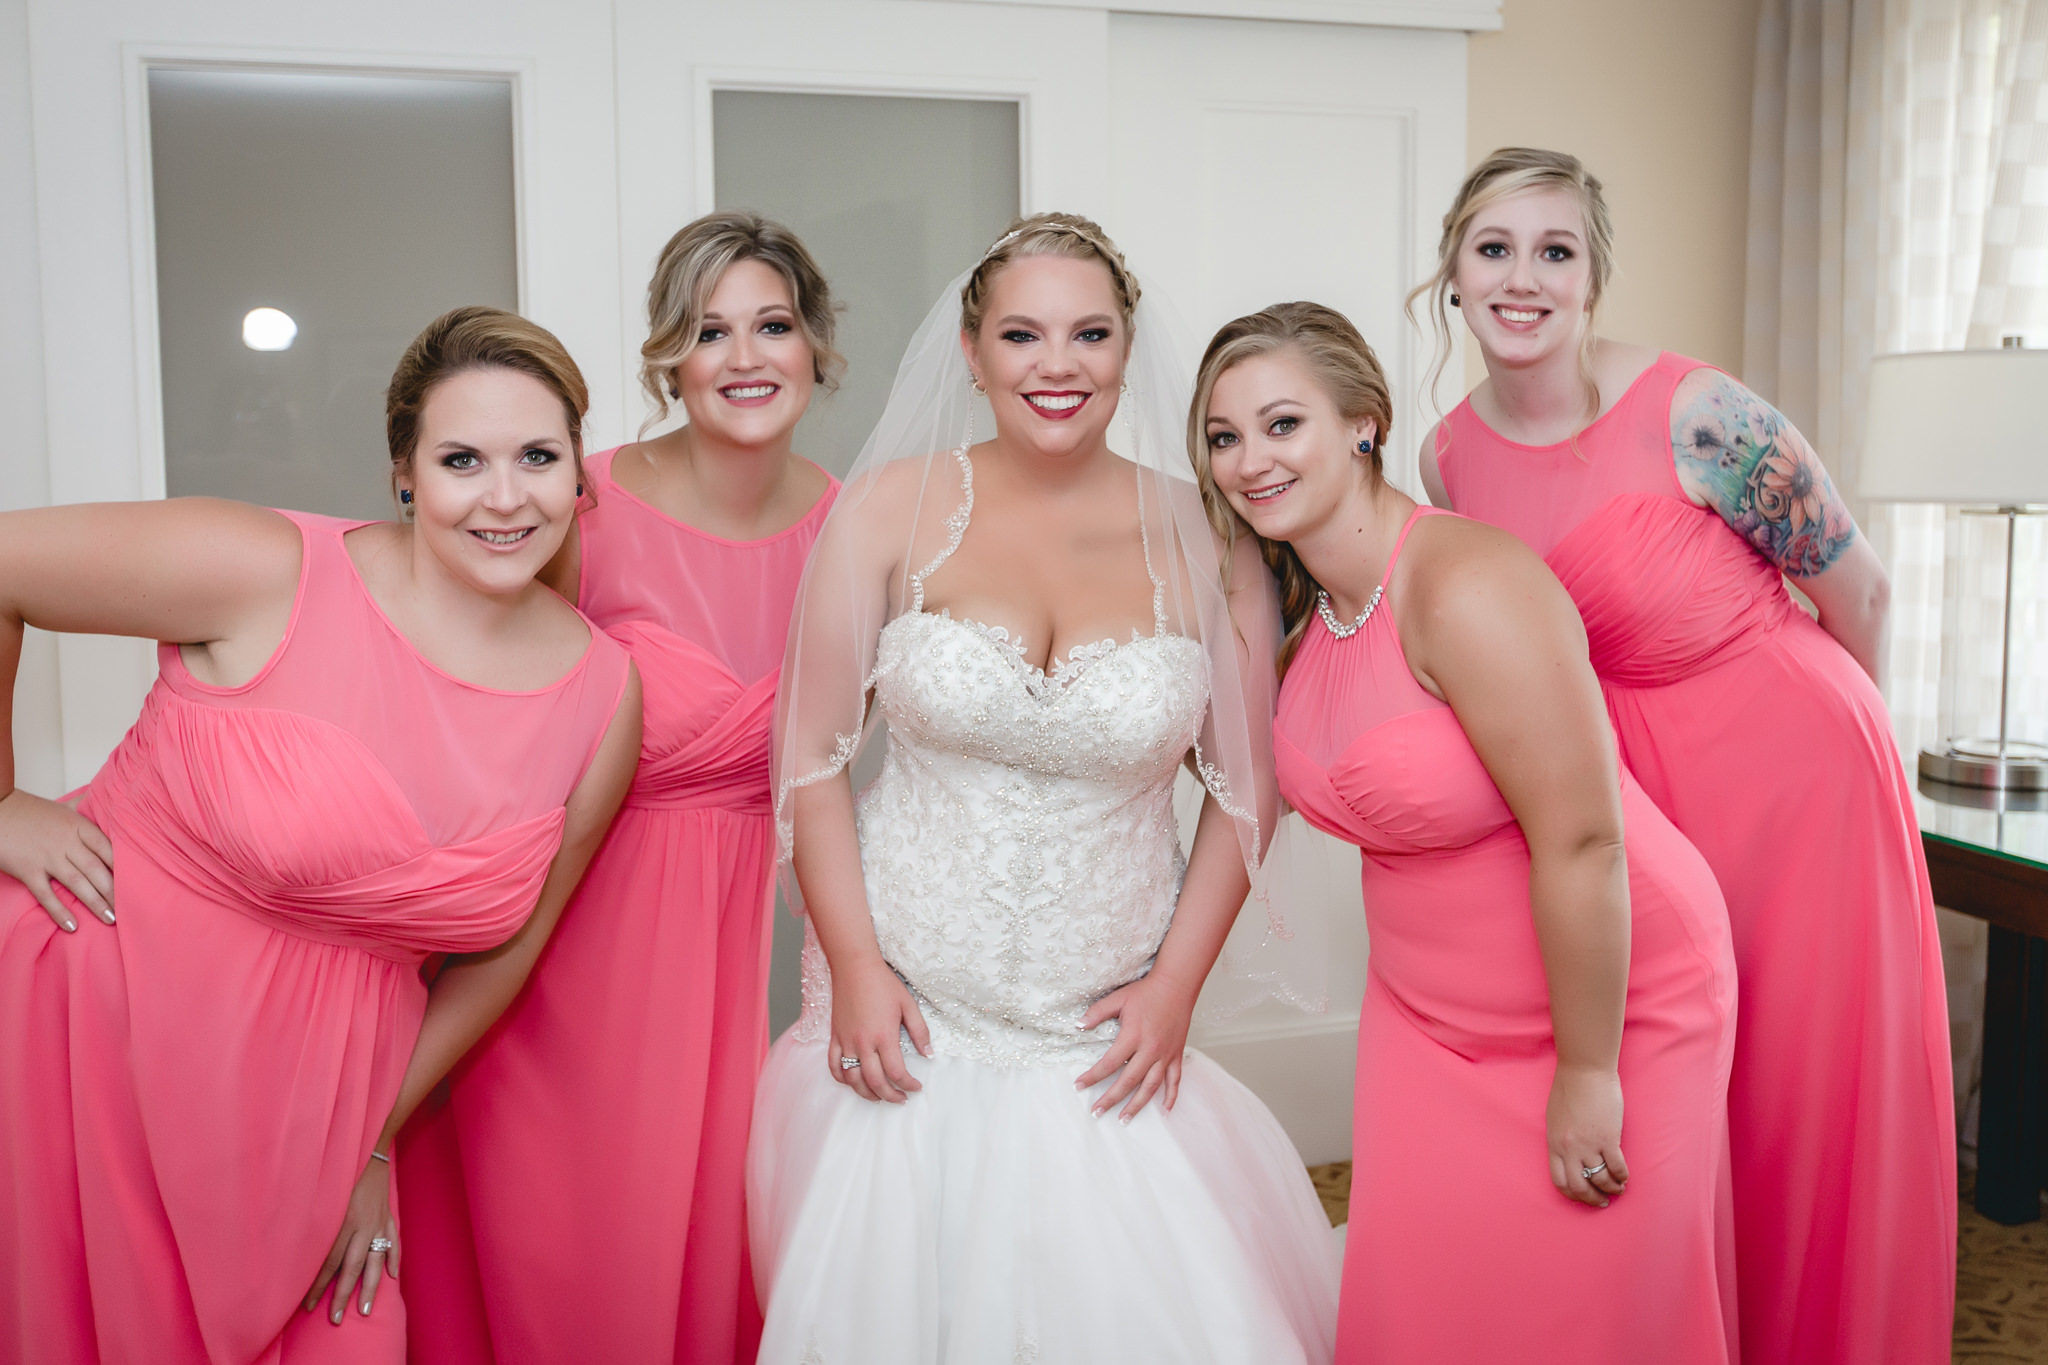 Bride poses with her bridesmaids at the Pittsburgh Airport Marriott